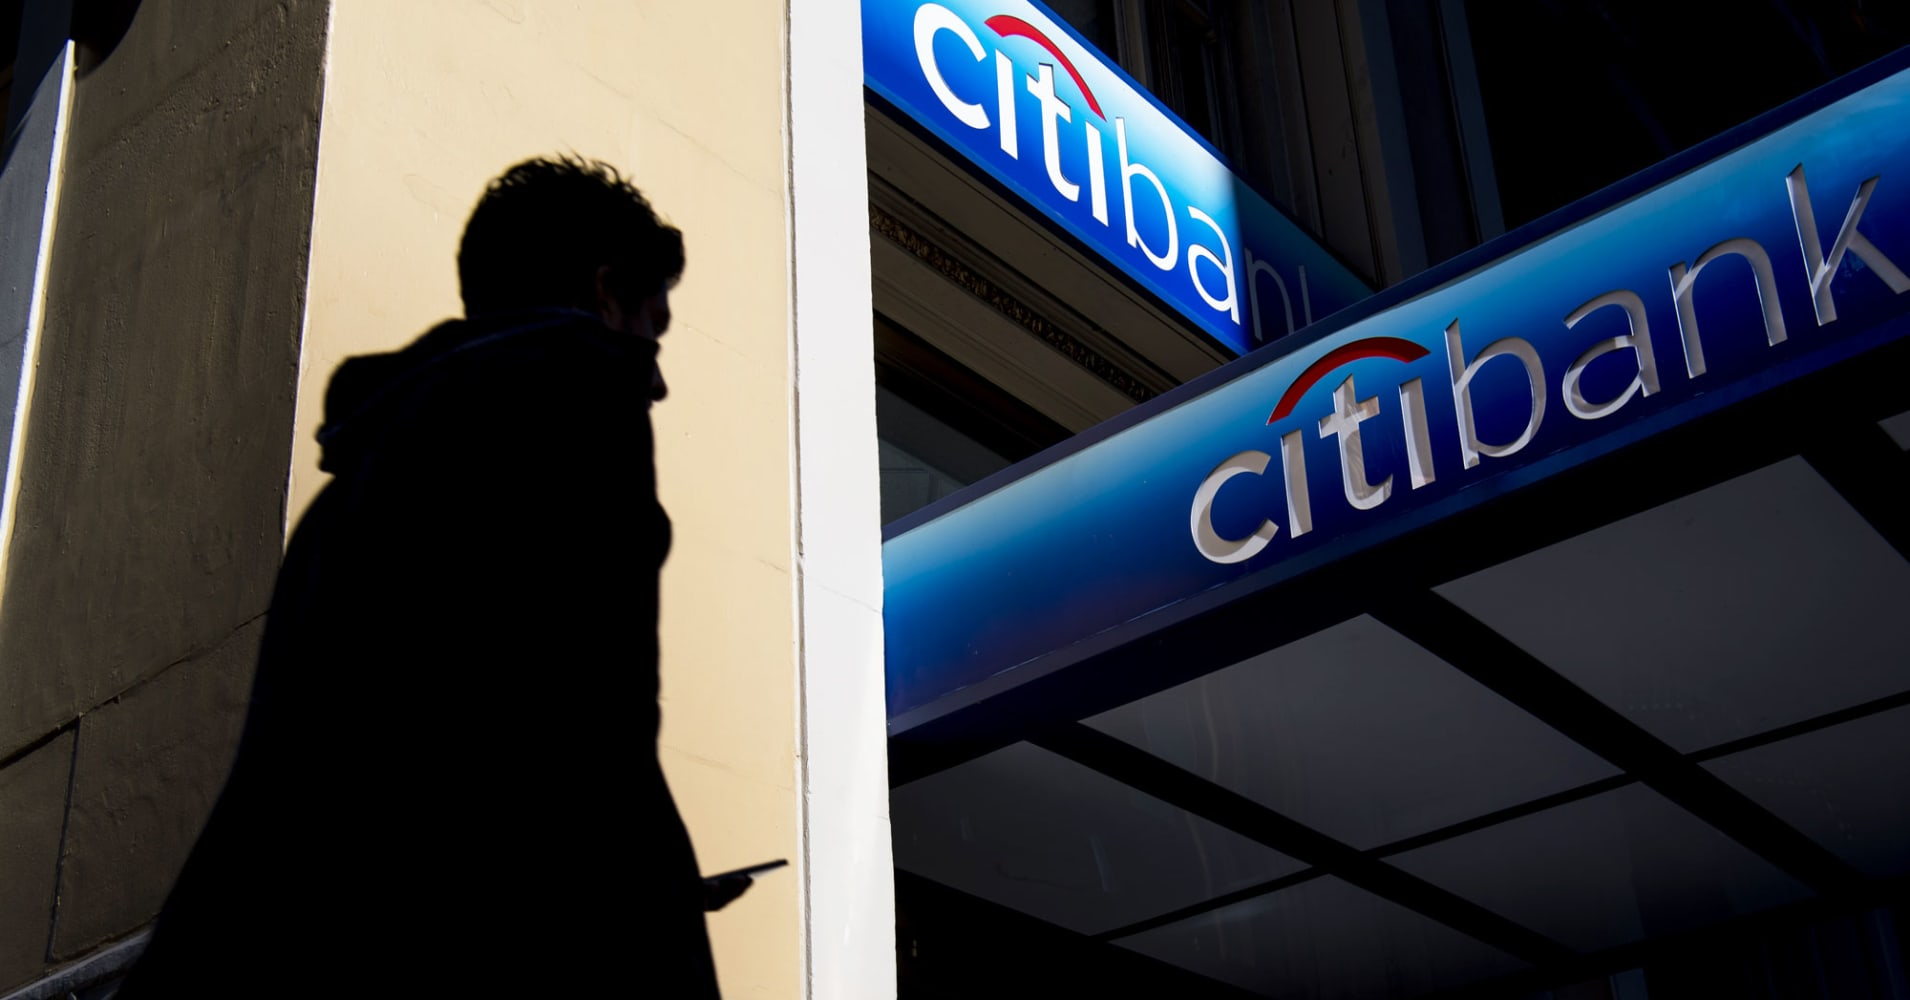 Citi could face $20 billion one-time hit if GOP tax plan becomes law, CFO says